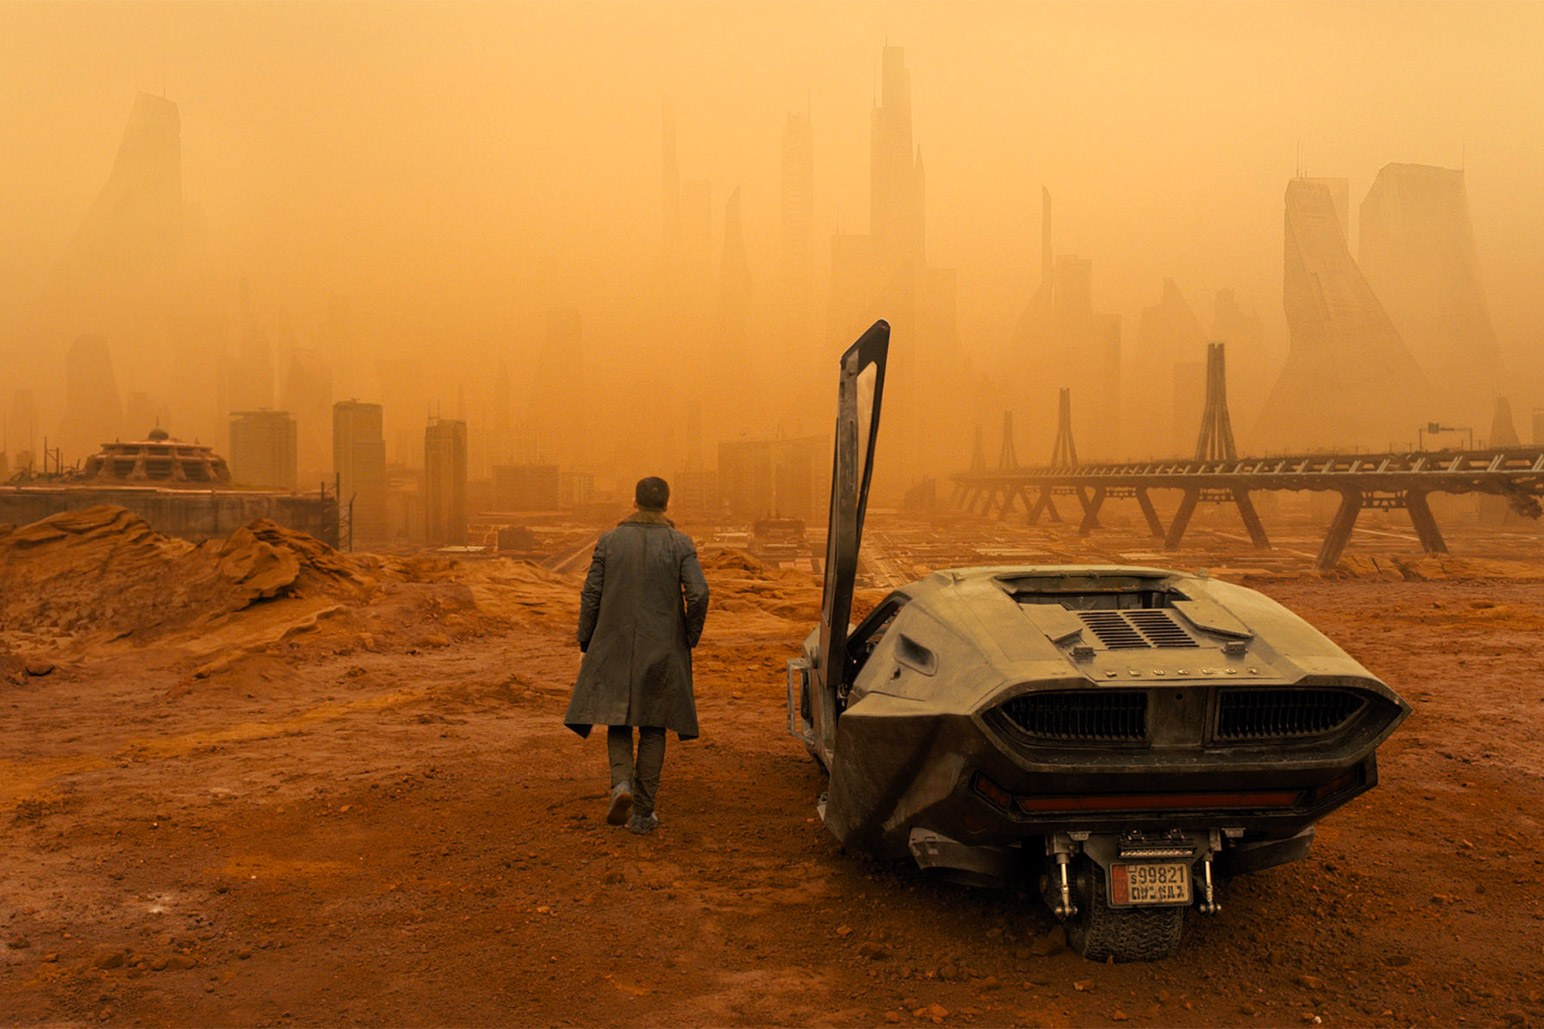 Blade Runner 2049 (Warner Bros.)